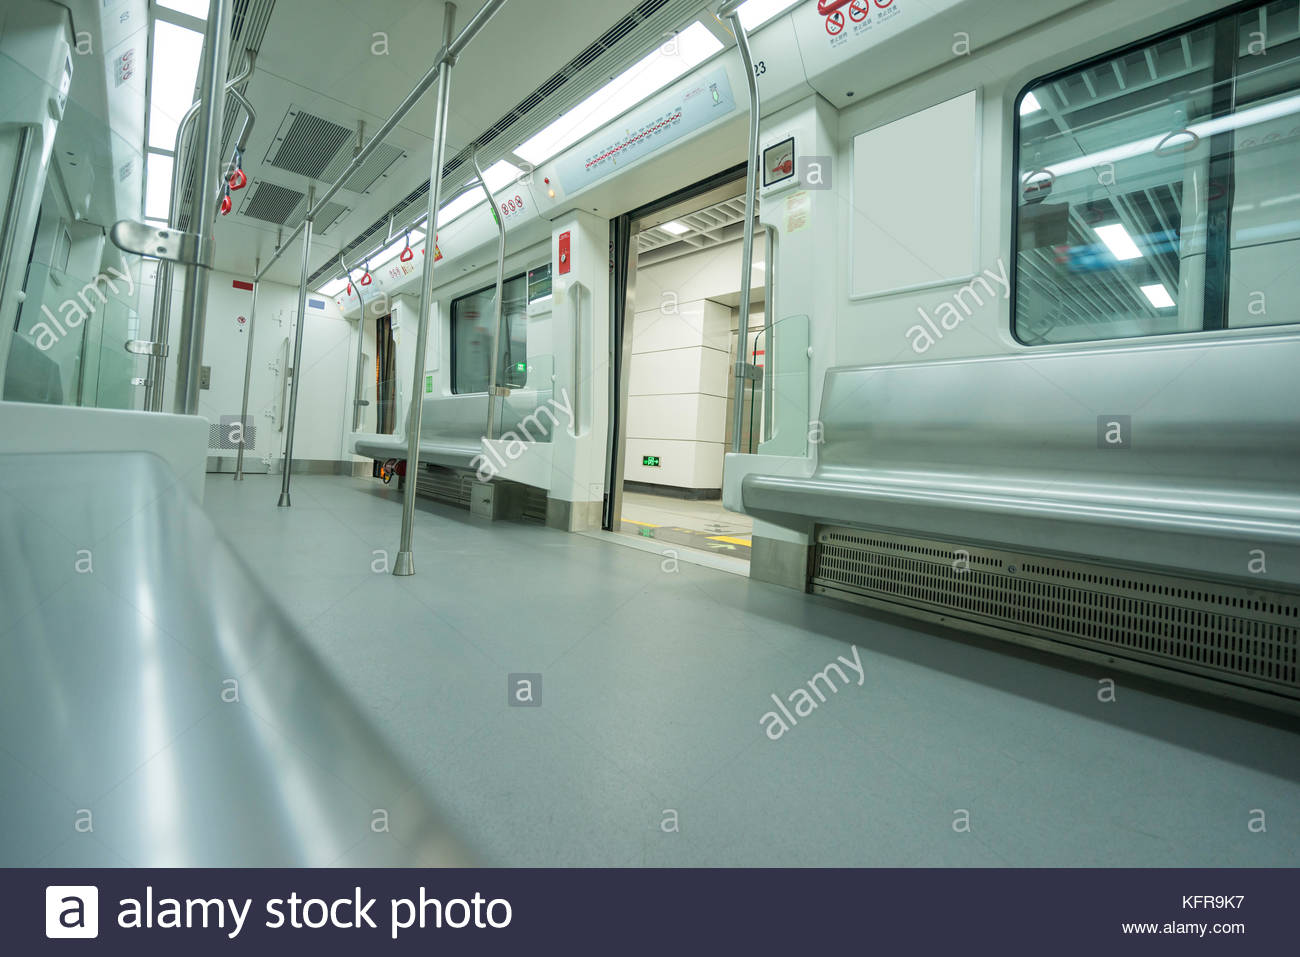 russian train interior stock photos russian train interior stock images alamy. Black Bedroom Furniture Sets. Home Design Ideas